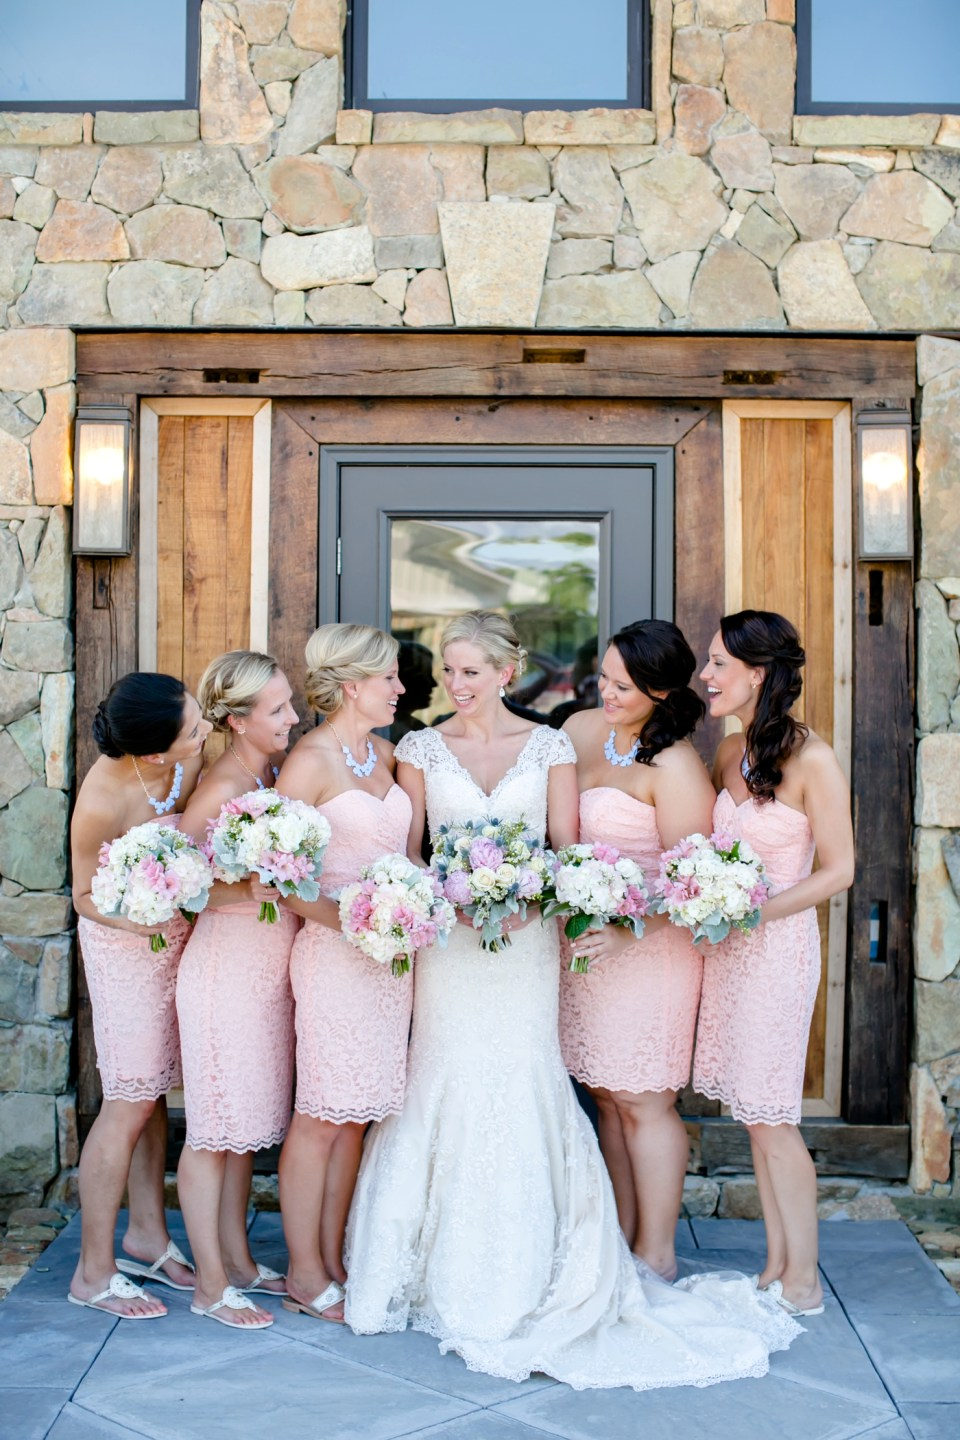 27A-Stone-Tower-Winery-Summer-Wedding-GG-1081